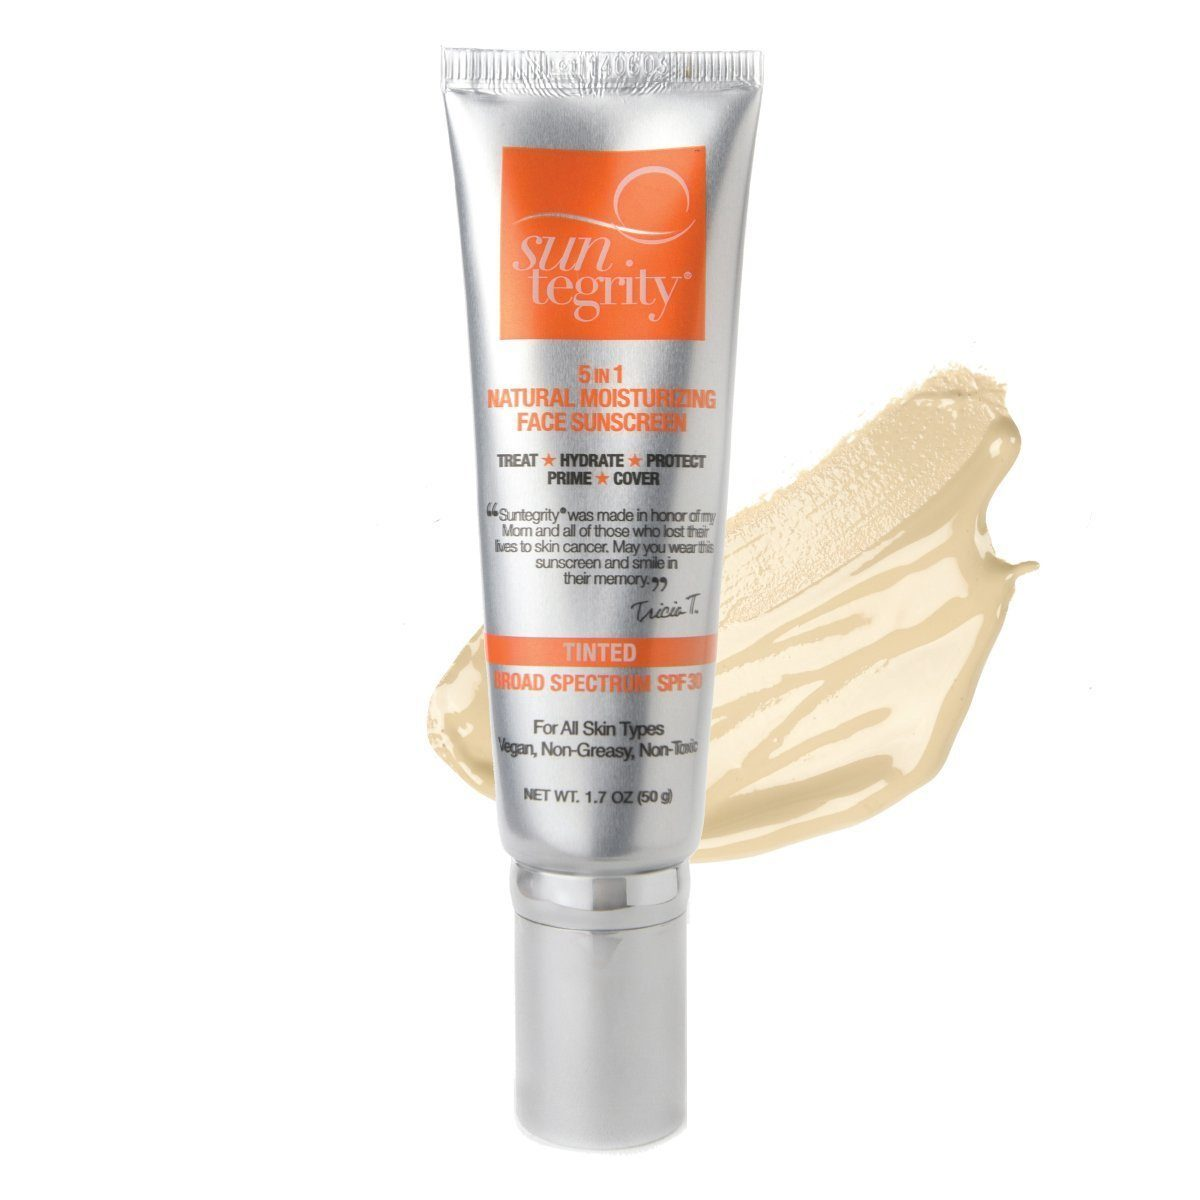 Suntegrity Natural 5 In 1 Tinted Moisturizer Primer Face Sunscreen Acnes Uv Tint Spf 35 Switch 2 Pure